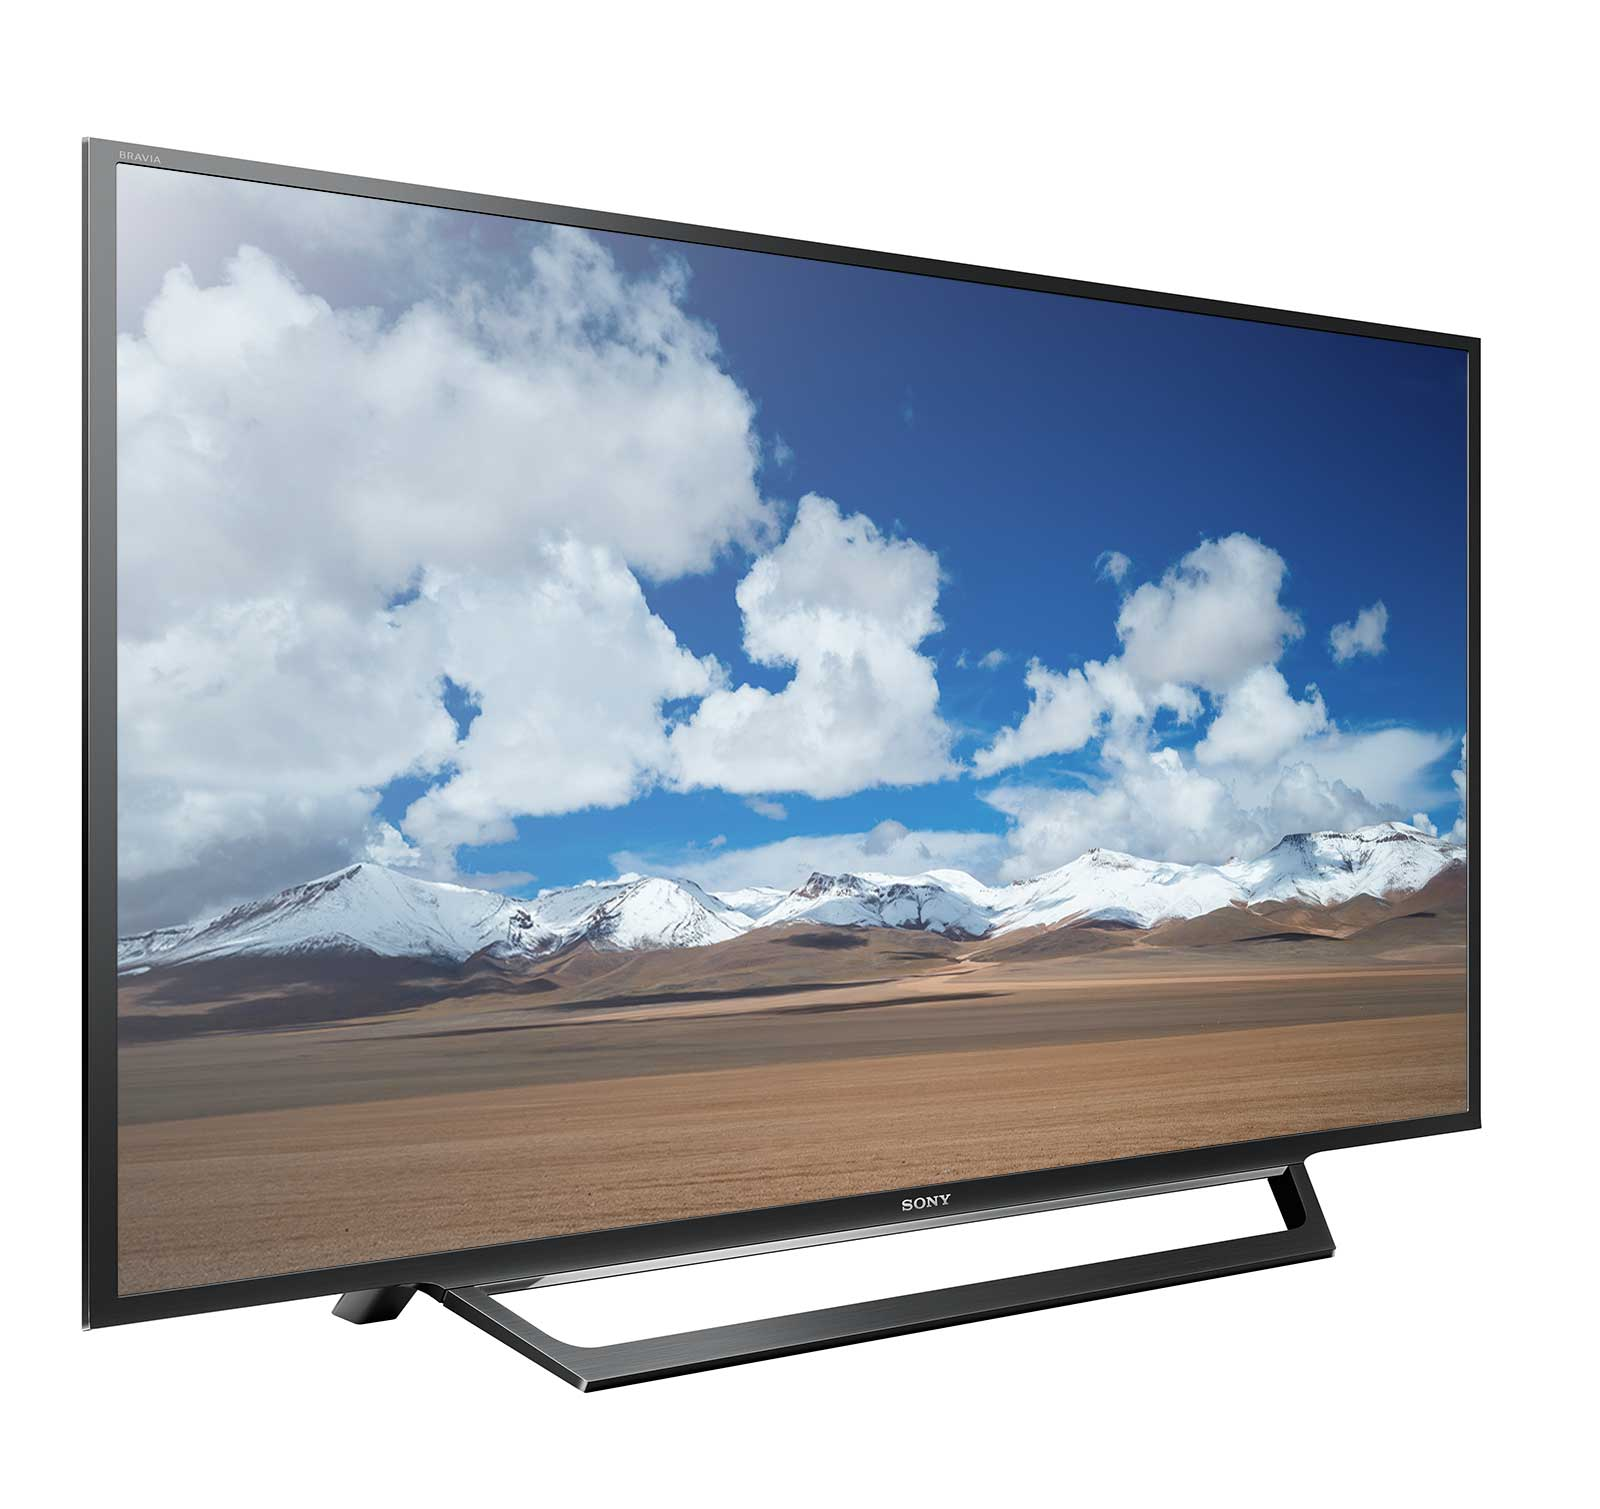 "Sony W600D 32"" HD Ready Direct Lit LED LCD TV w/ Built-In WiFi"